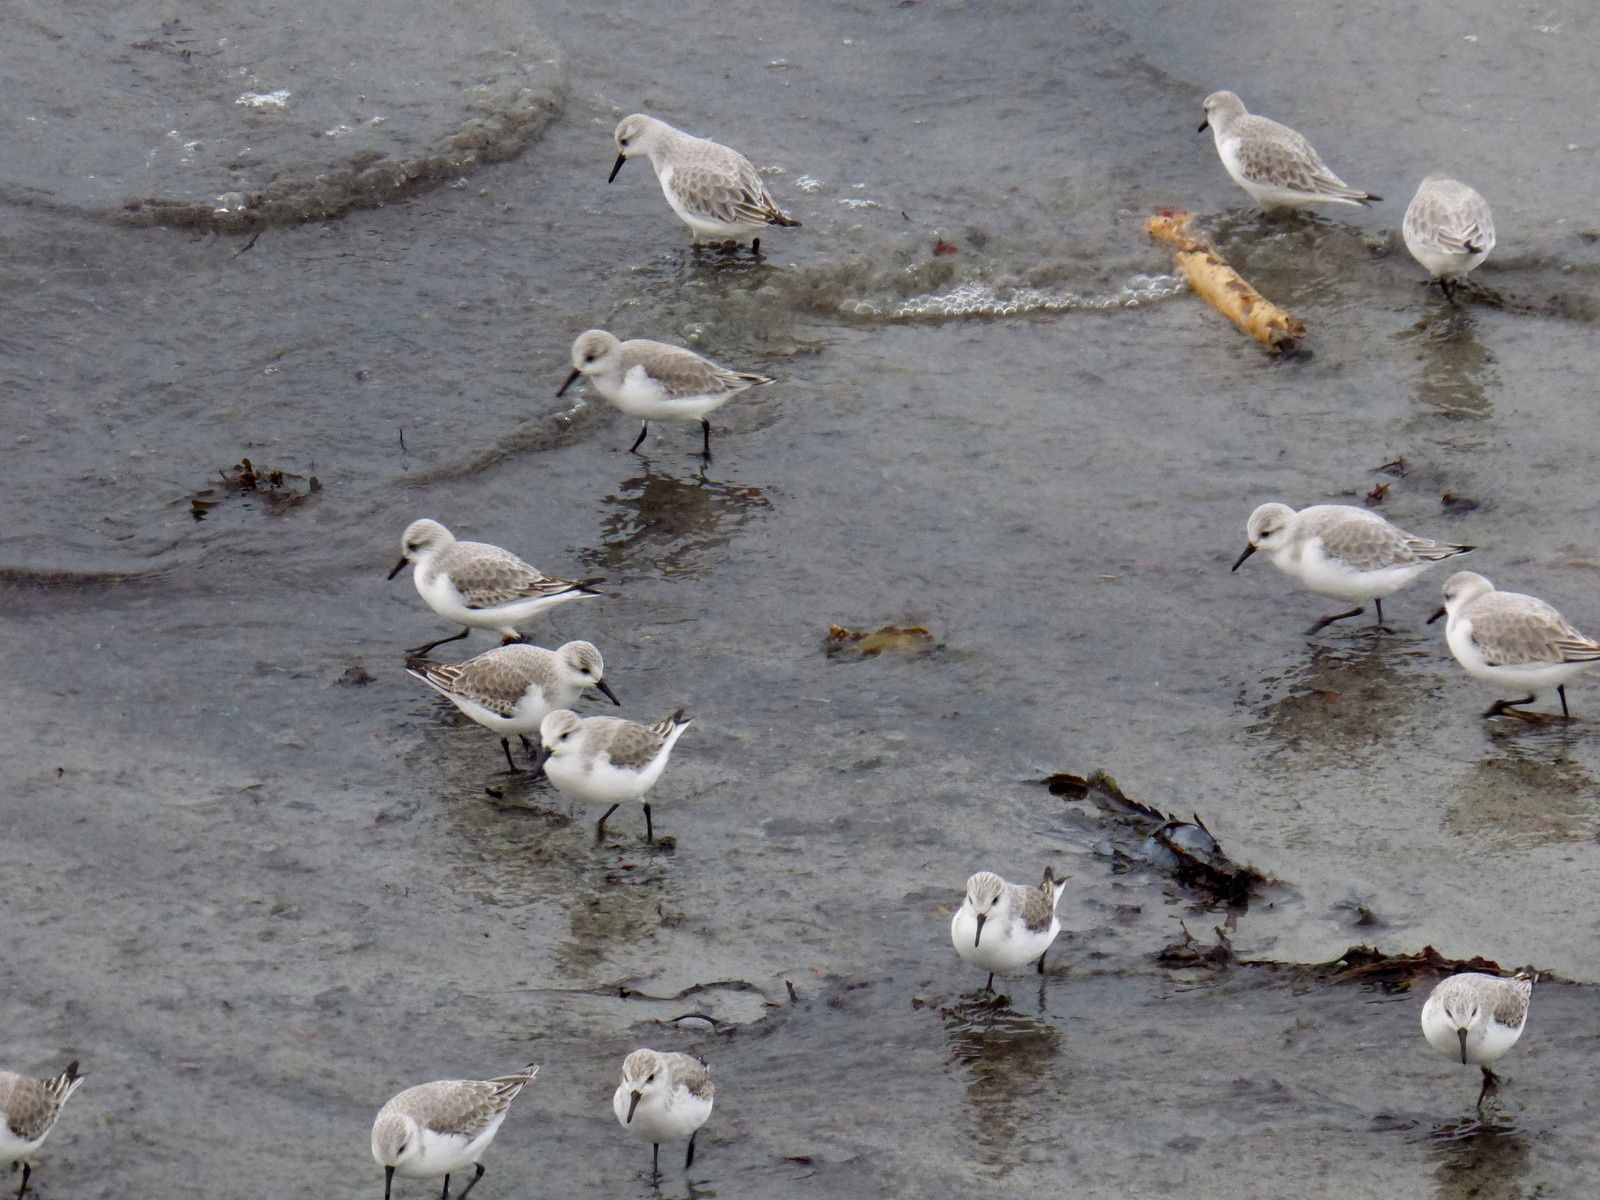 Un requin et des Sanderlings